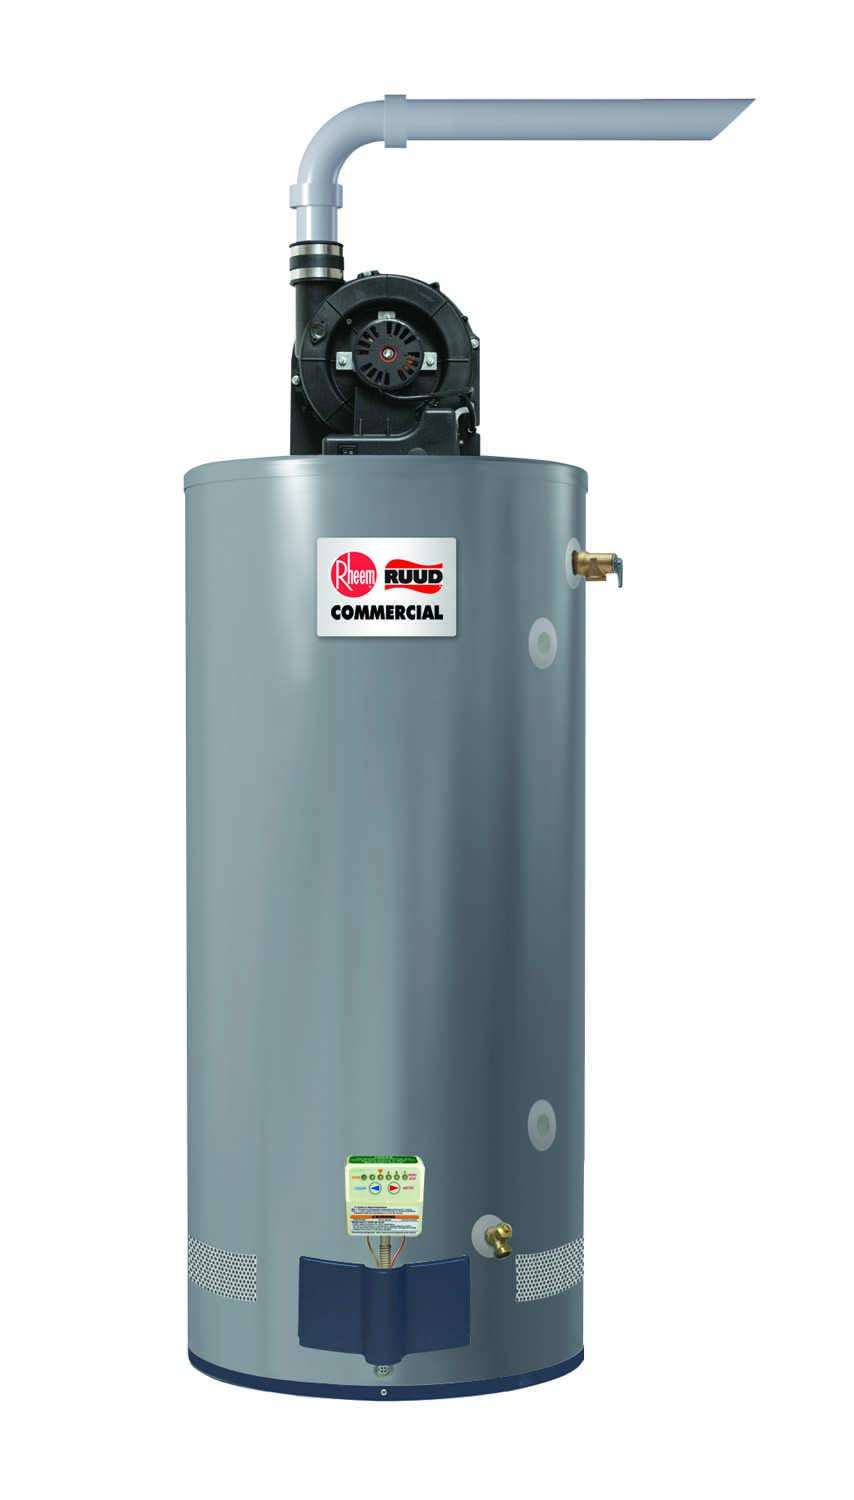 Rheem Power Vent Global Leader Manufacturing In Air Conditioning And Water Heating